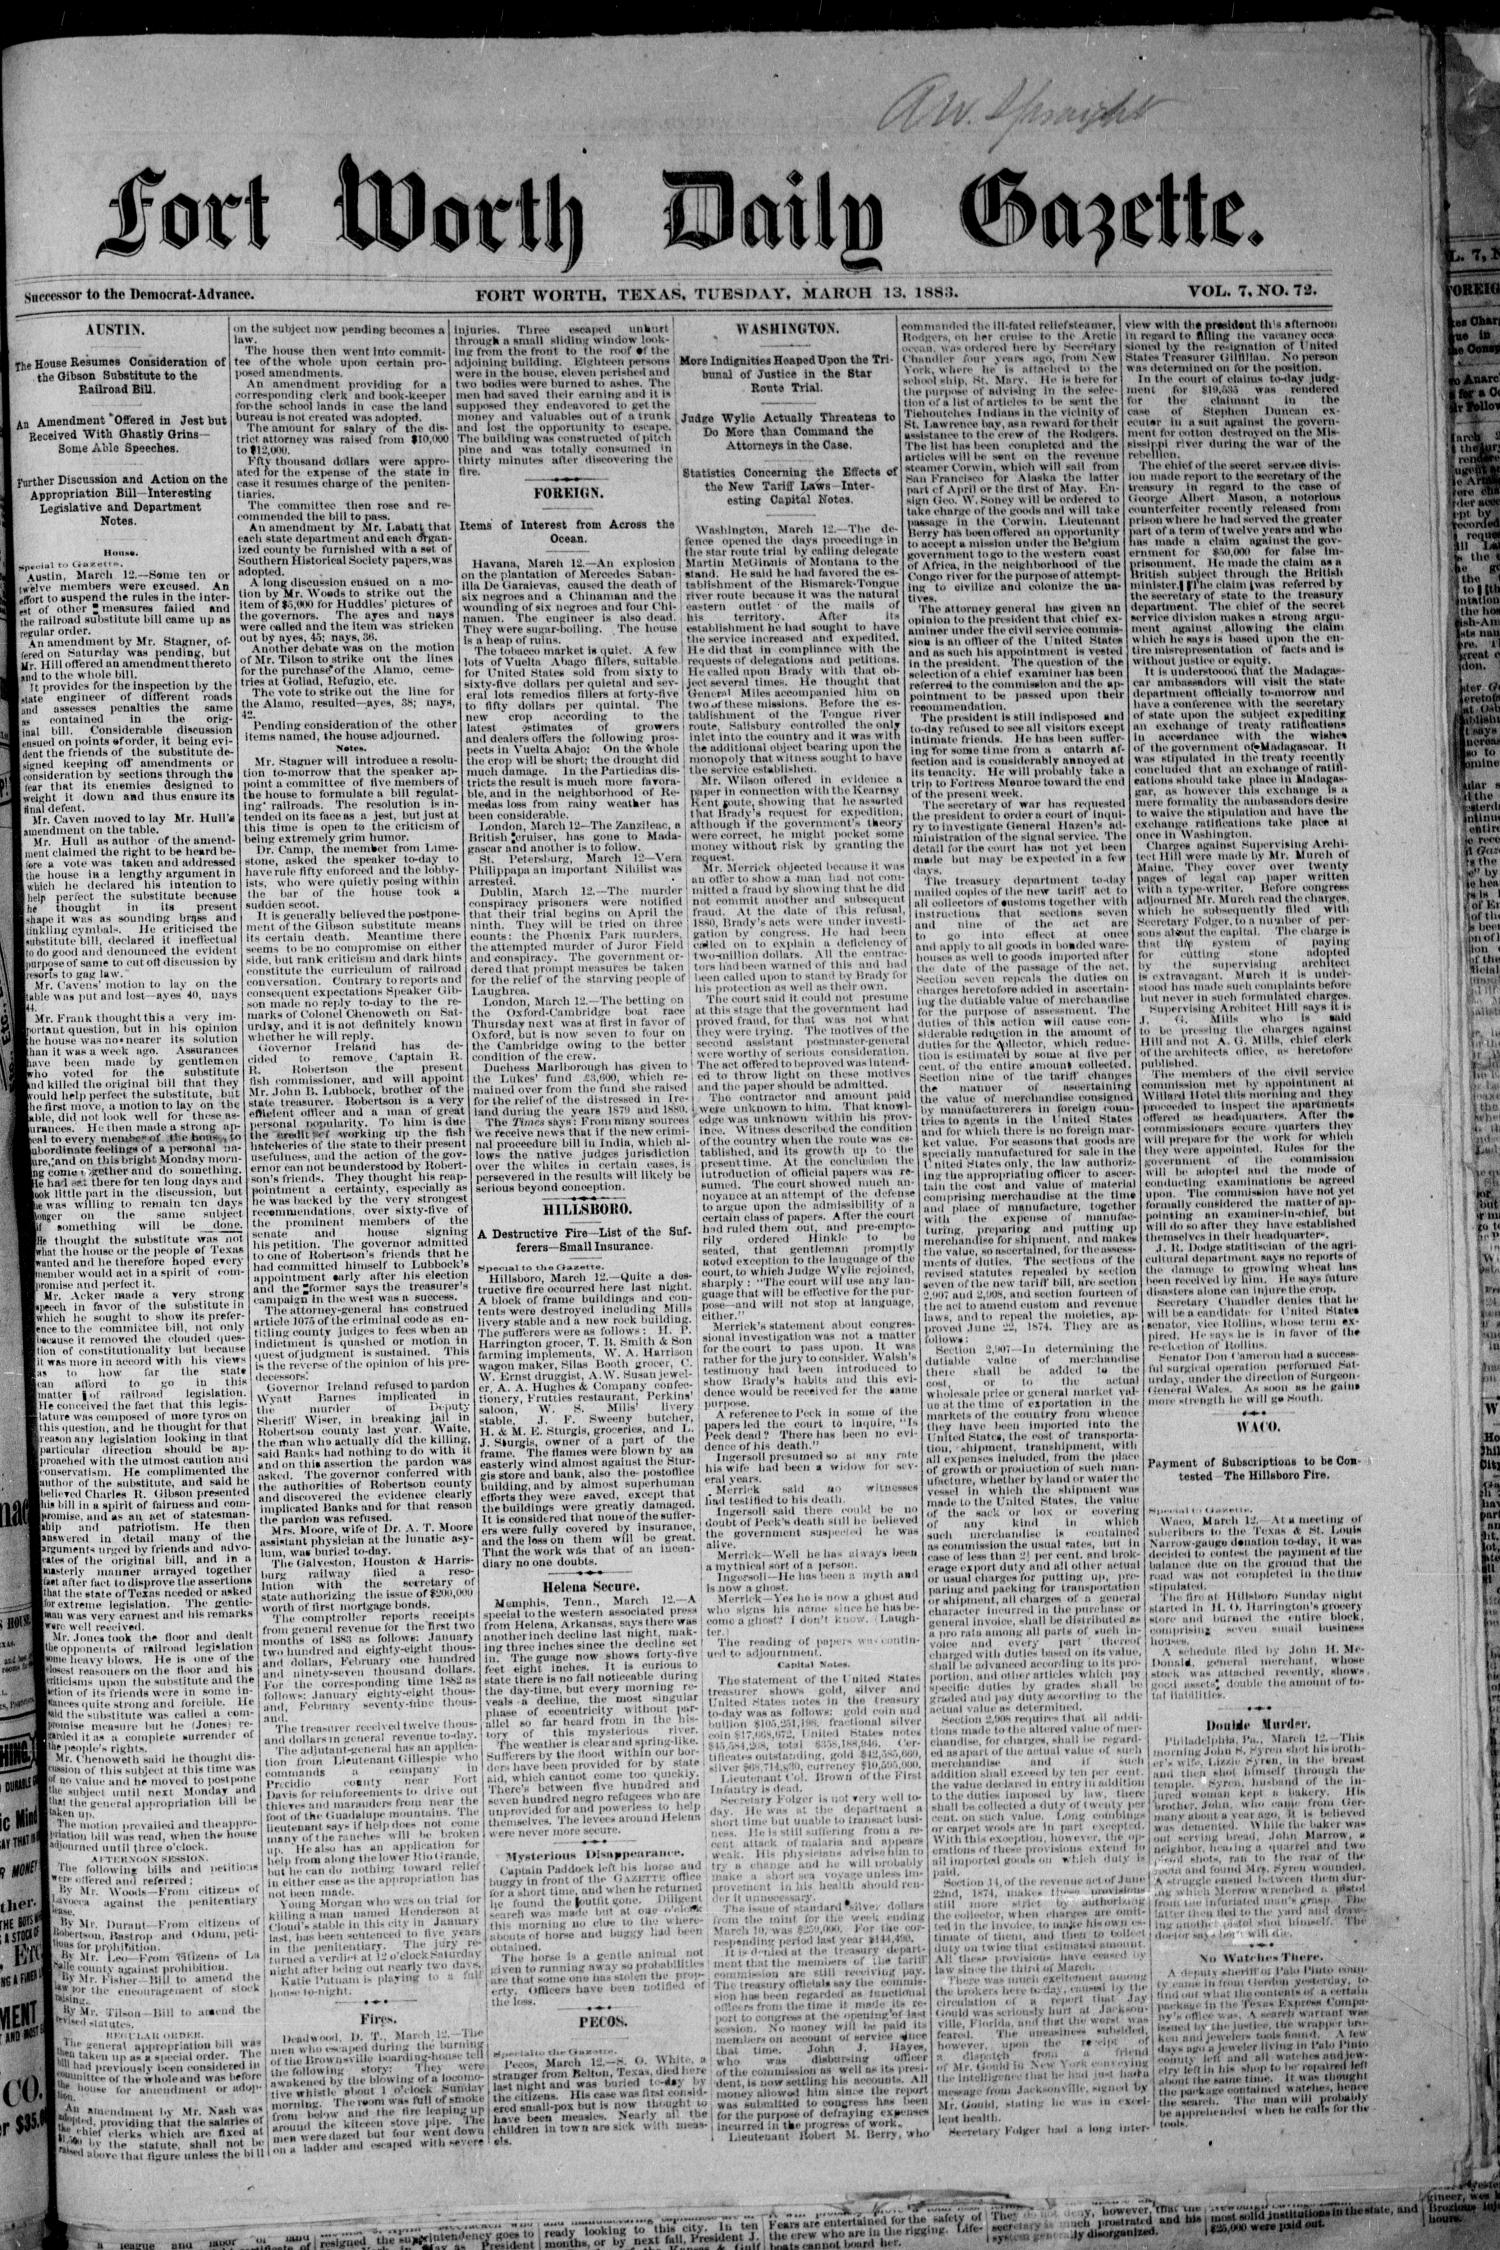 Fort Worth Daily Gazette. (Fort Worth, Tex.), Vol. 7, No. 72, Ed. 1, Tuesday, March 13, 1883                                                                                                      [Sequence #]: 1 of 8